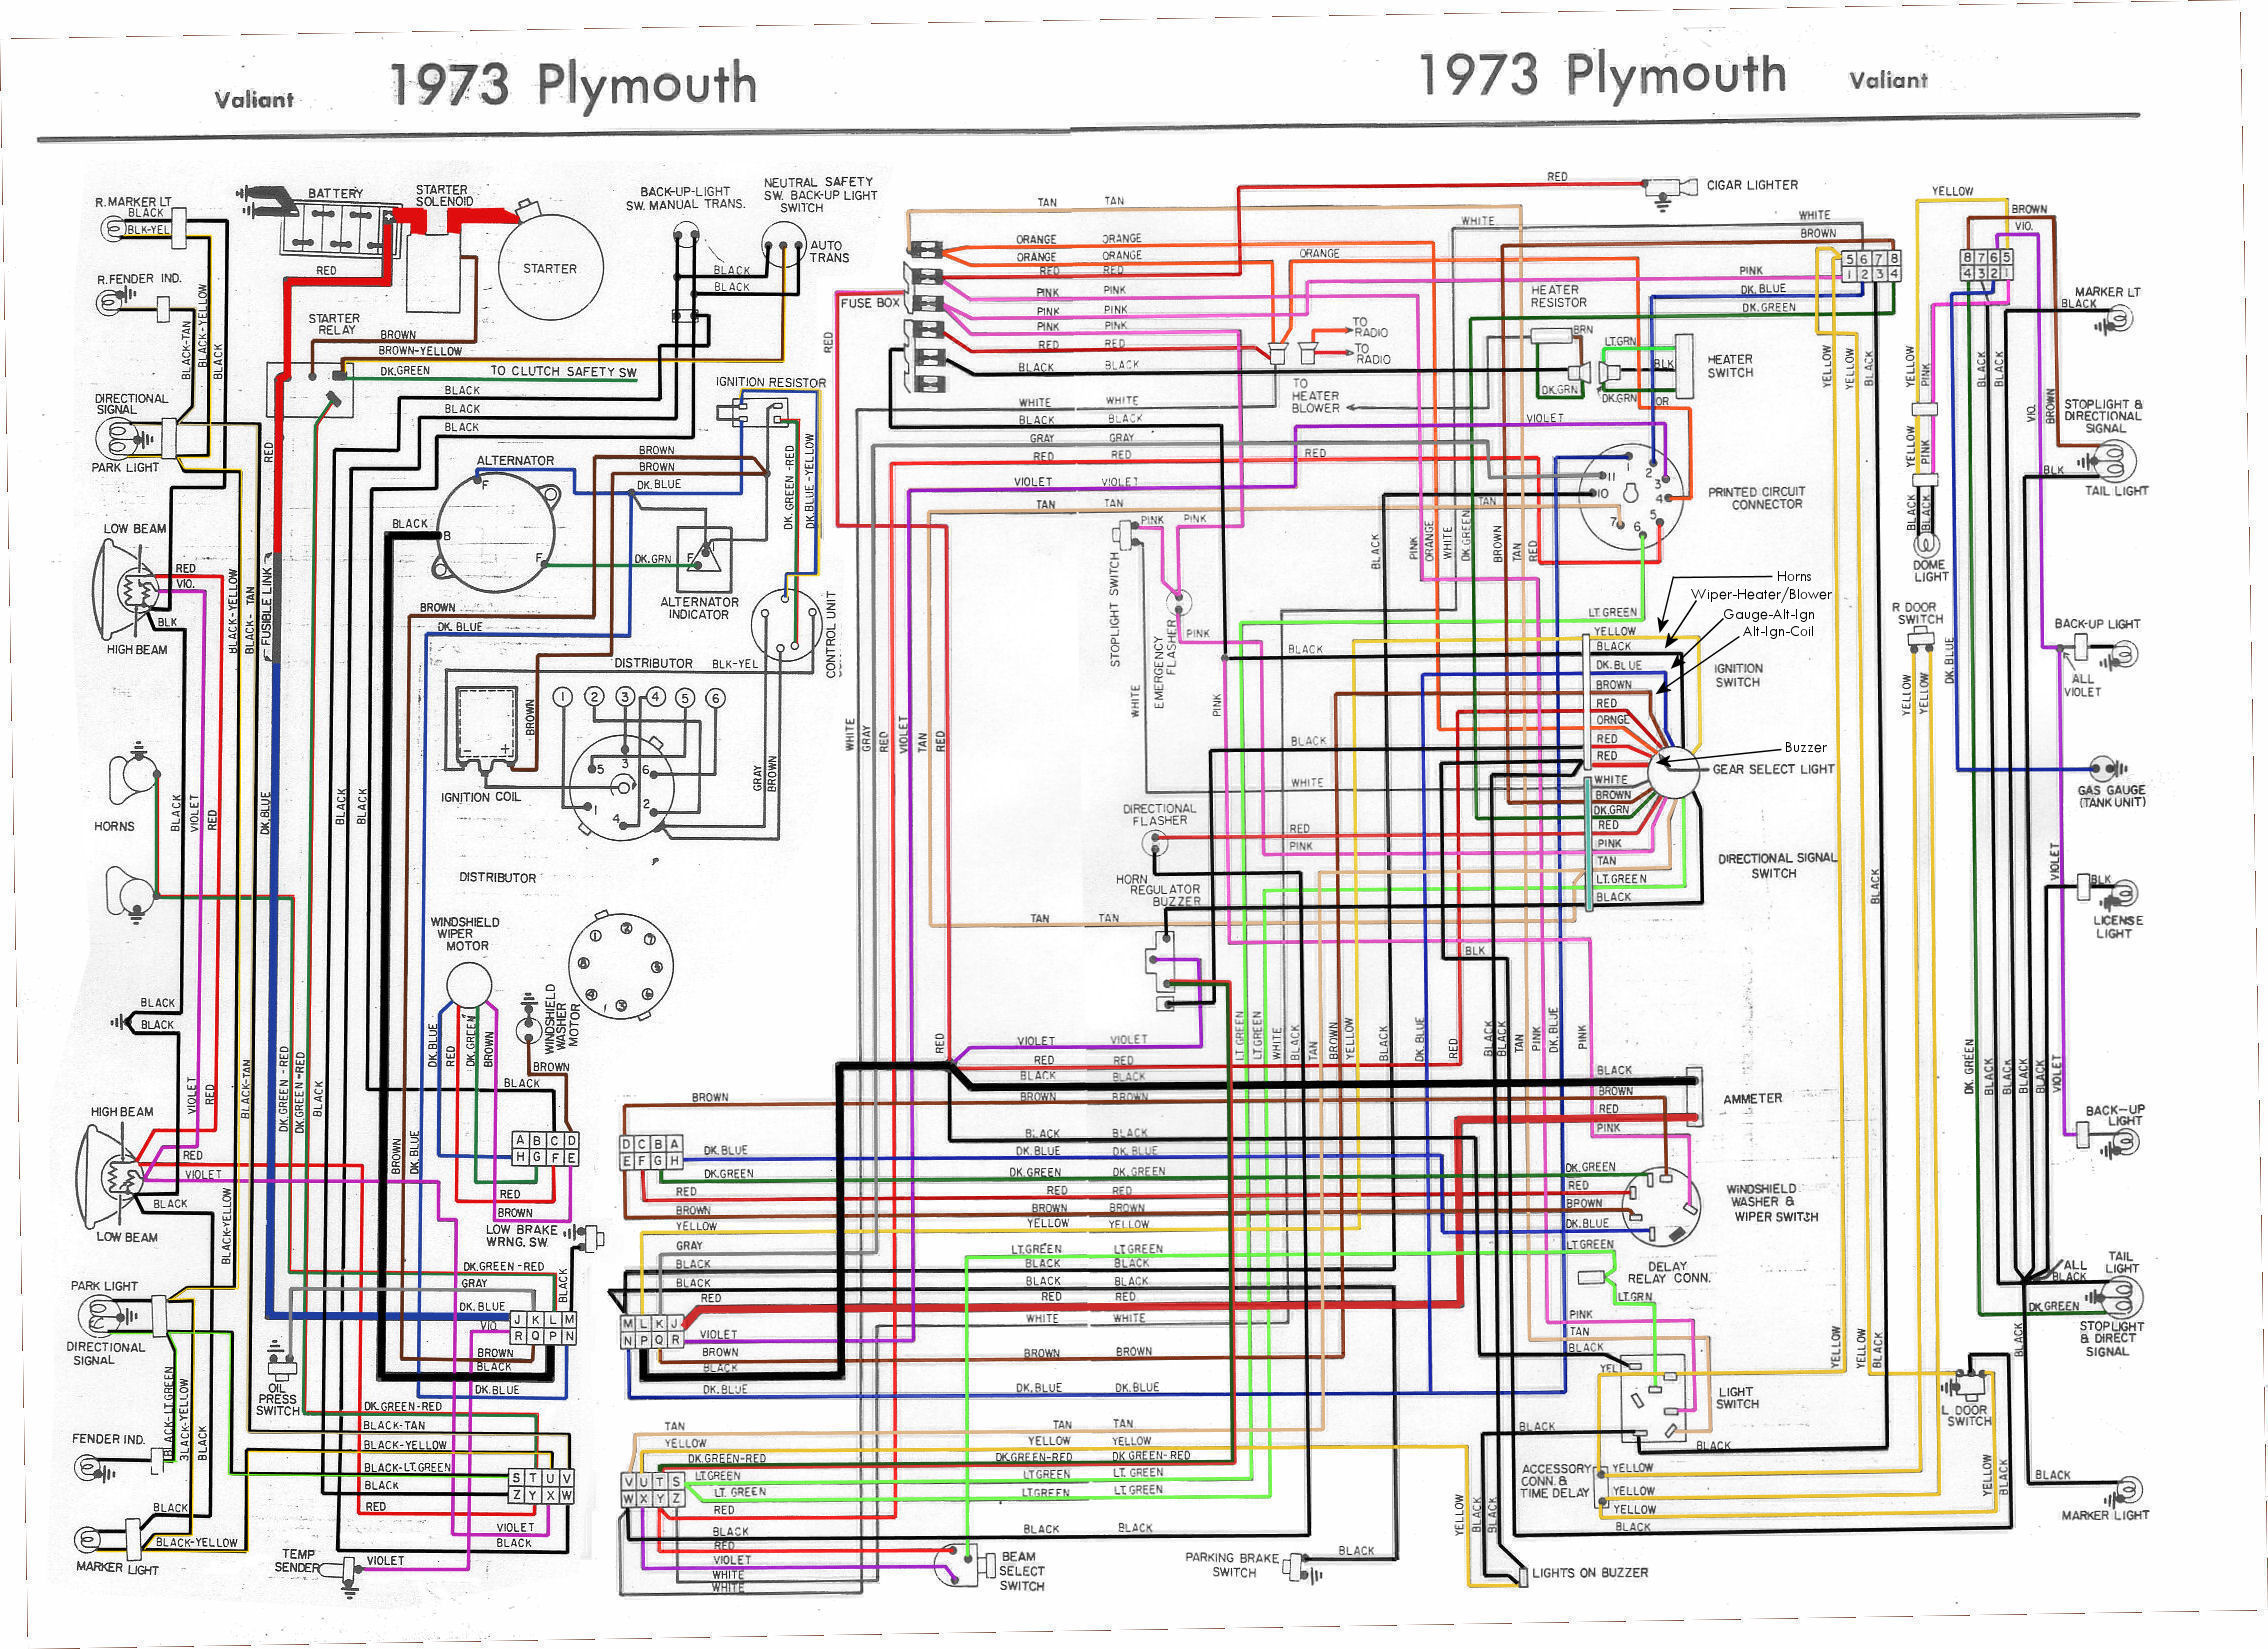 1967 Gtx Wiring Diagram Will Be A Thing Vw Pdf Instrument Gremlins For Bodies Only Mopar Forum Mustang Ford F100